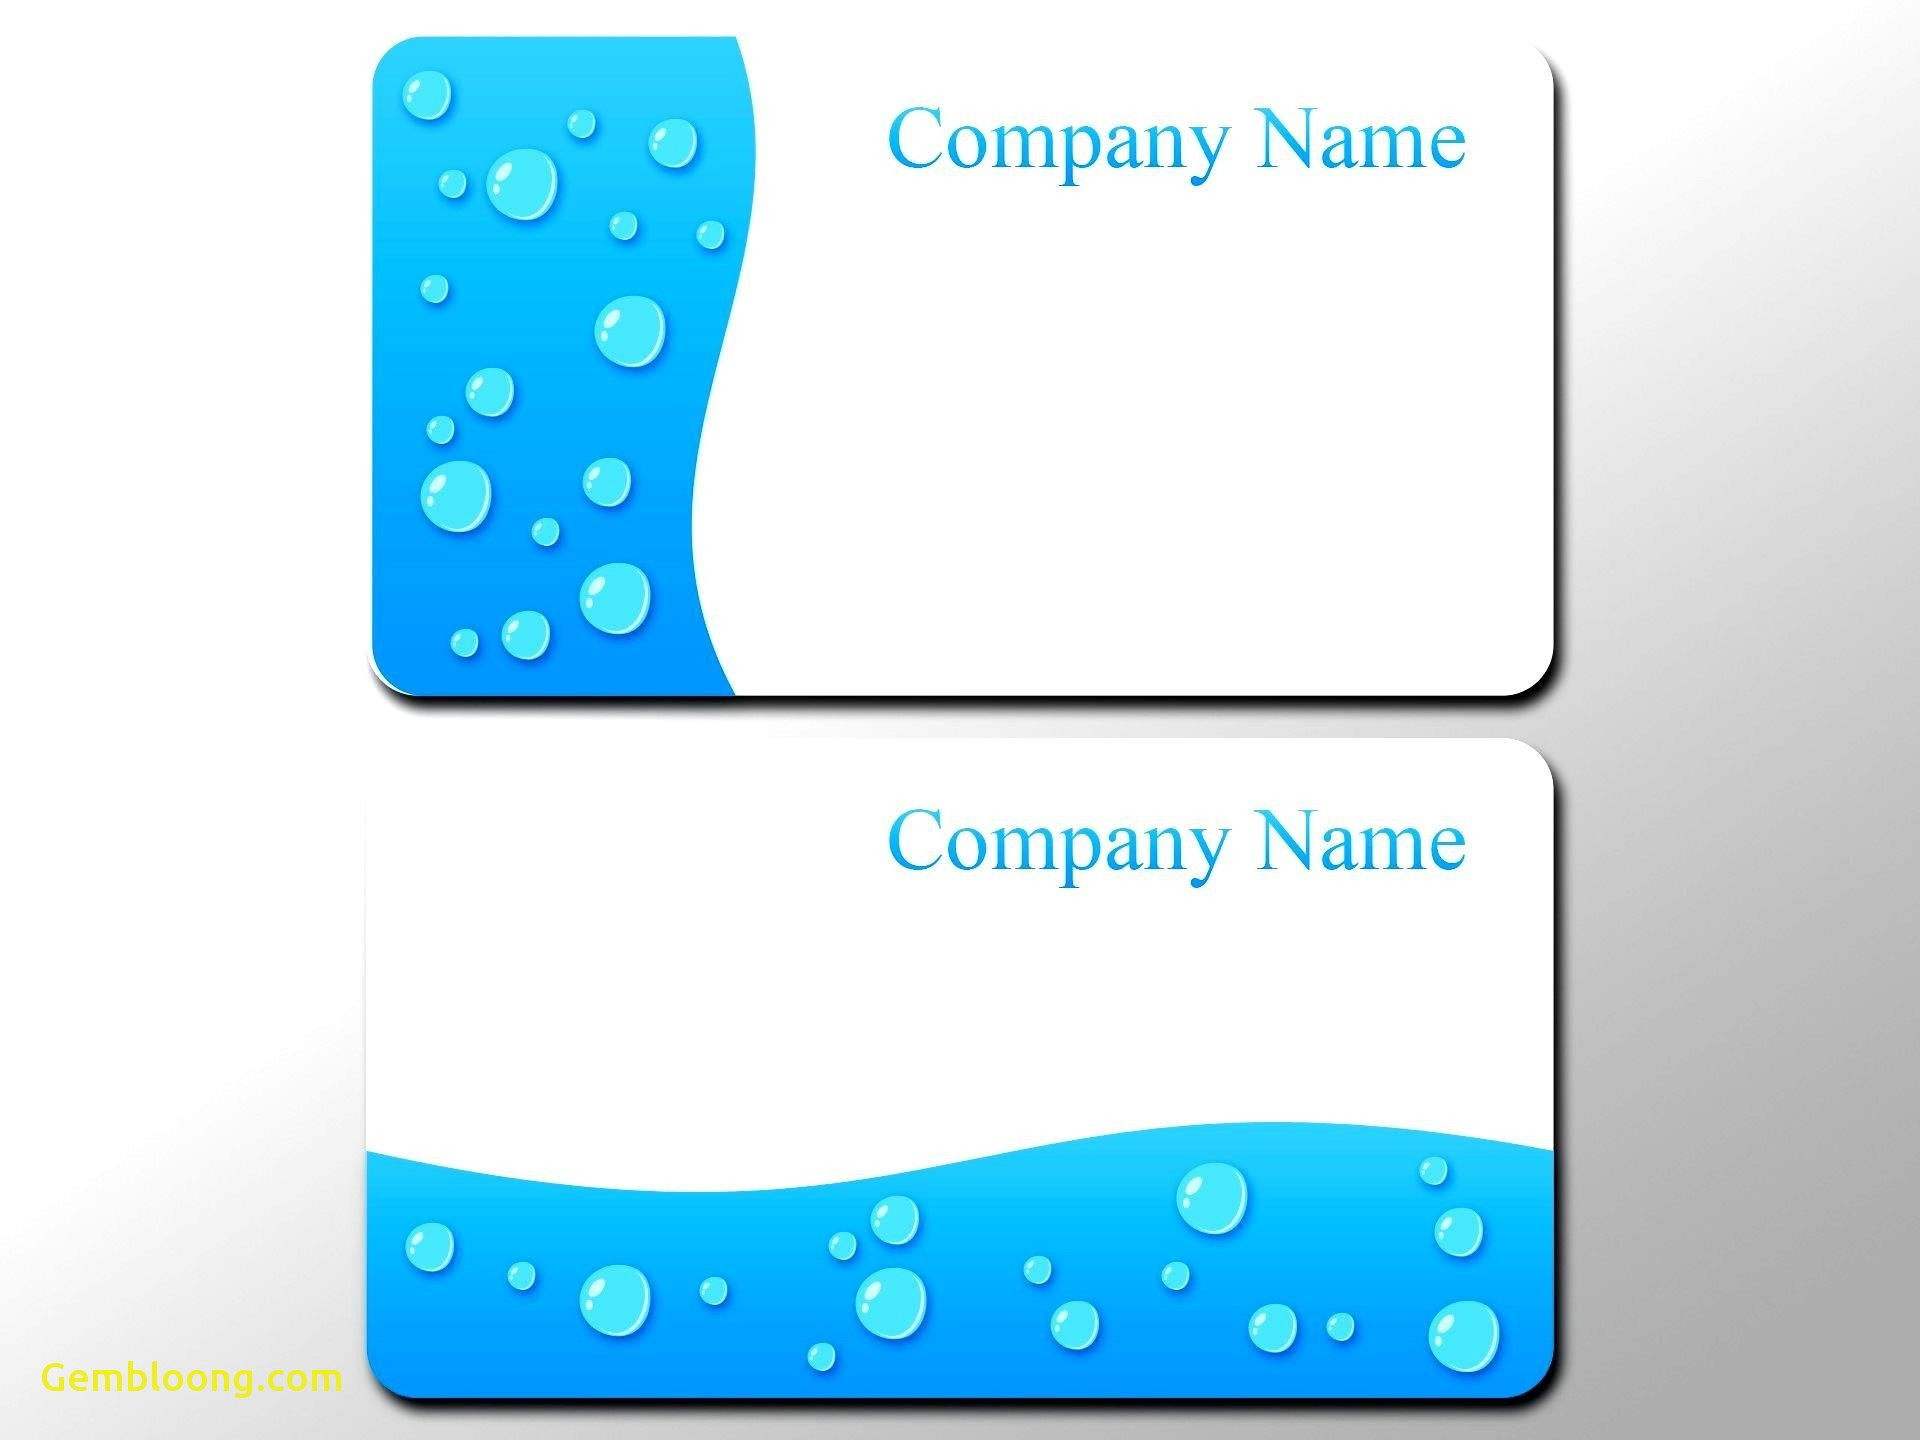 Business Card Photoshop Template Psd Awesome  Business  Blank Pertaining To Blank Business Card Template Photoshop